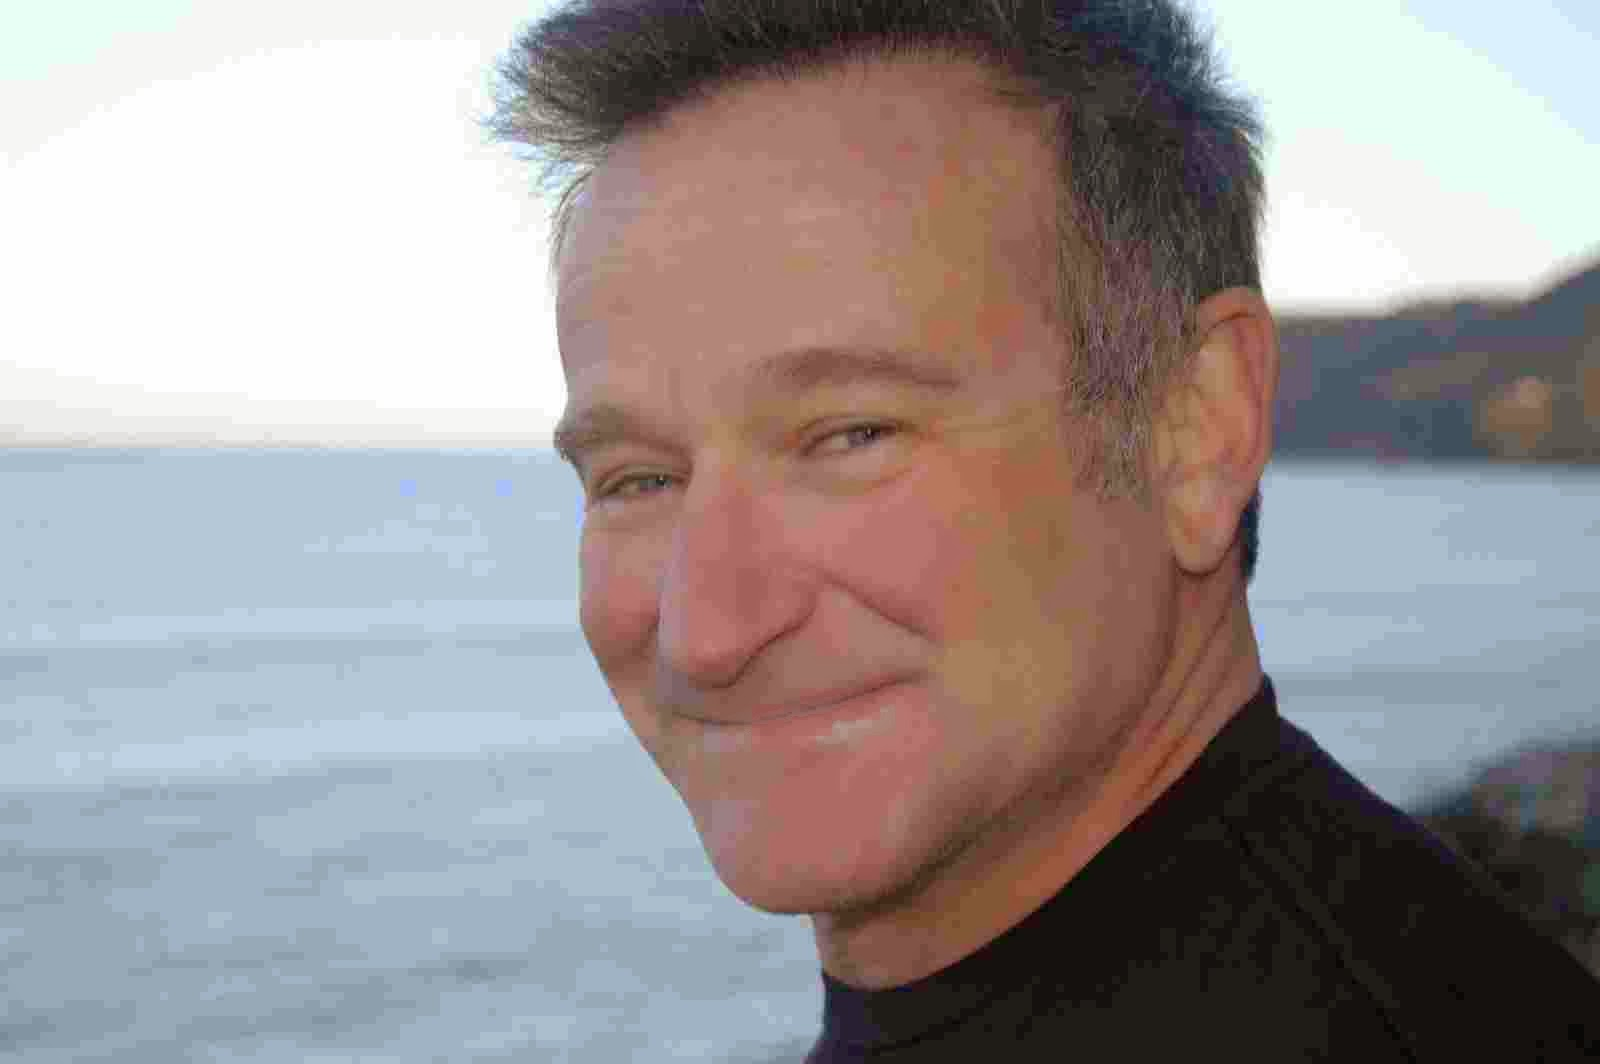 Photo of Robin Williams from the public domain.